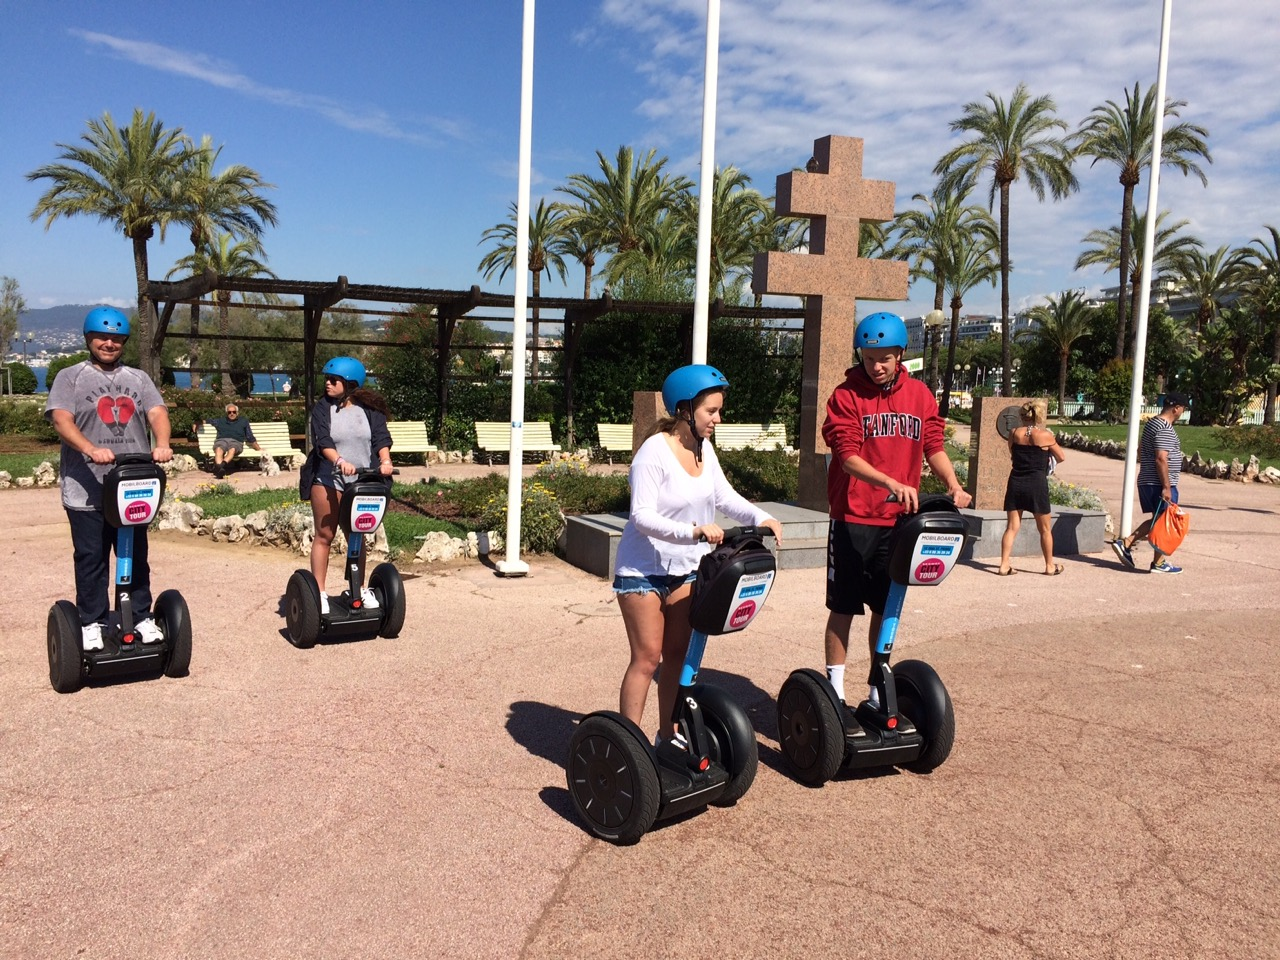 City Tour by MobilBoard Segway Cannes - The gardens of the Roseraie at the end of the Croisette.